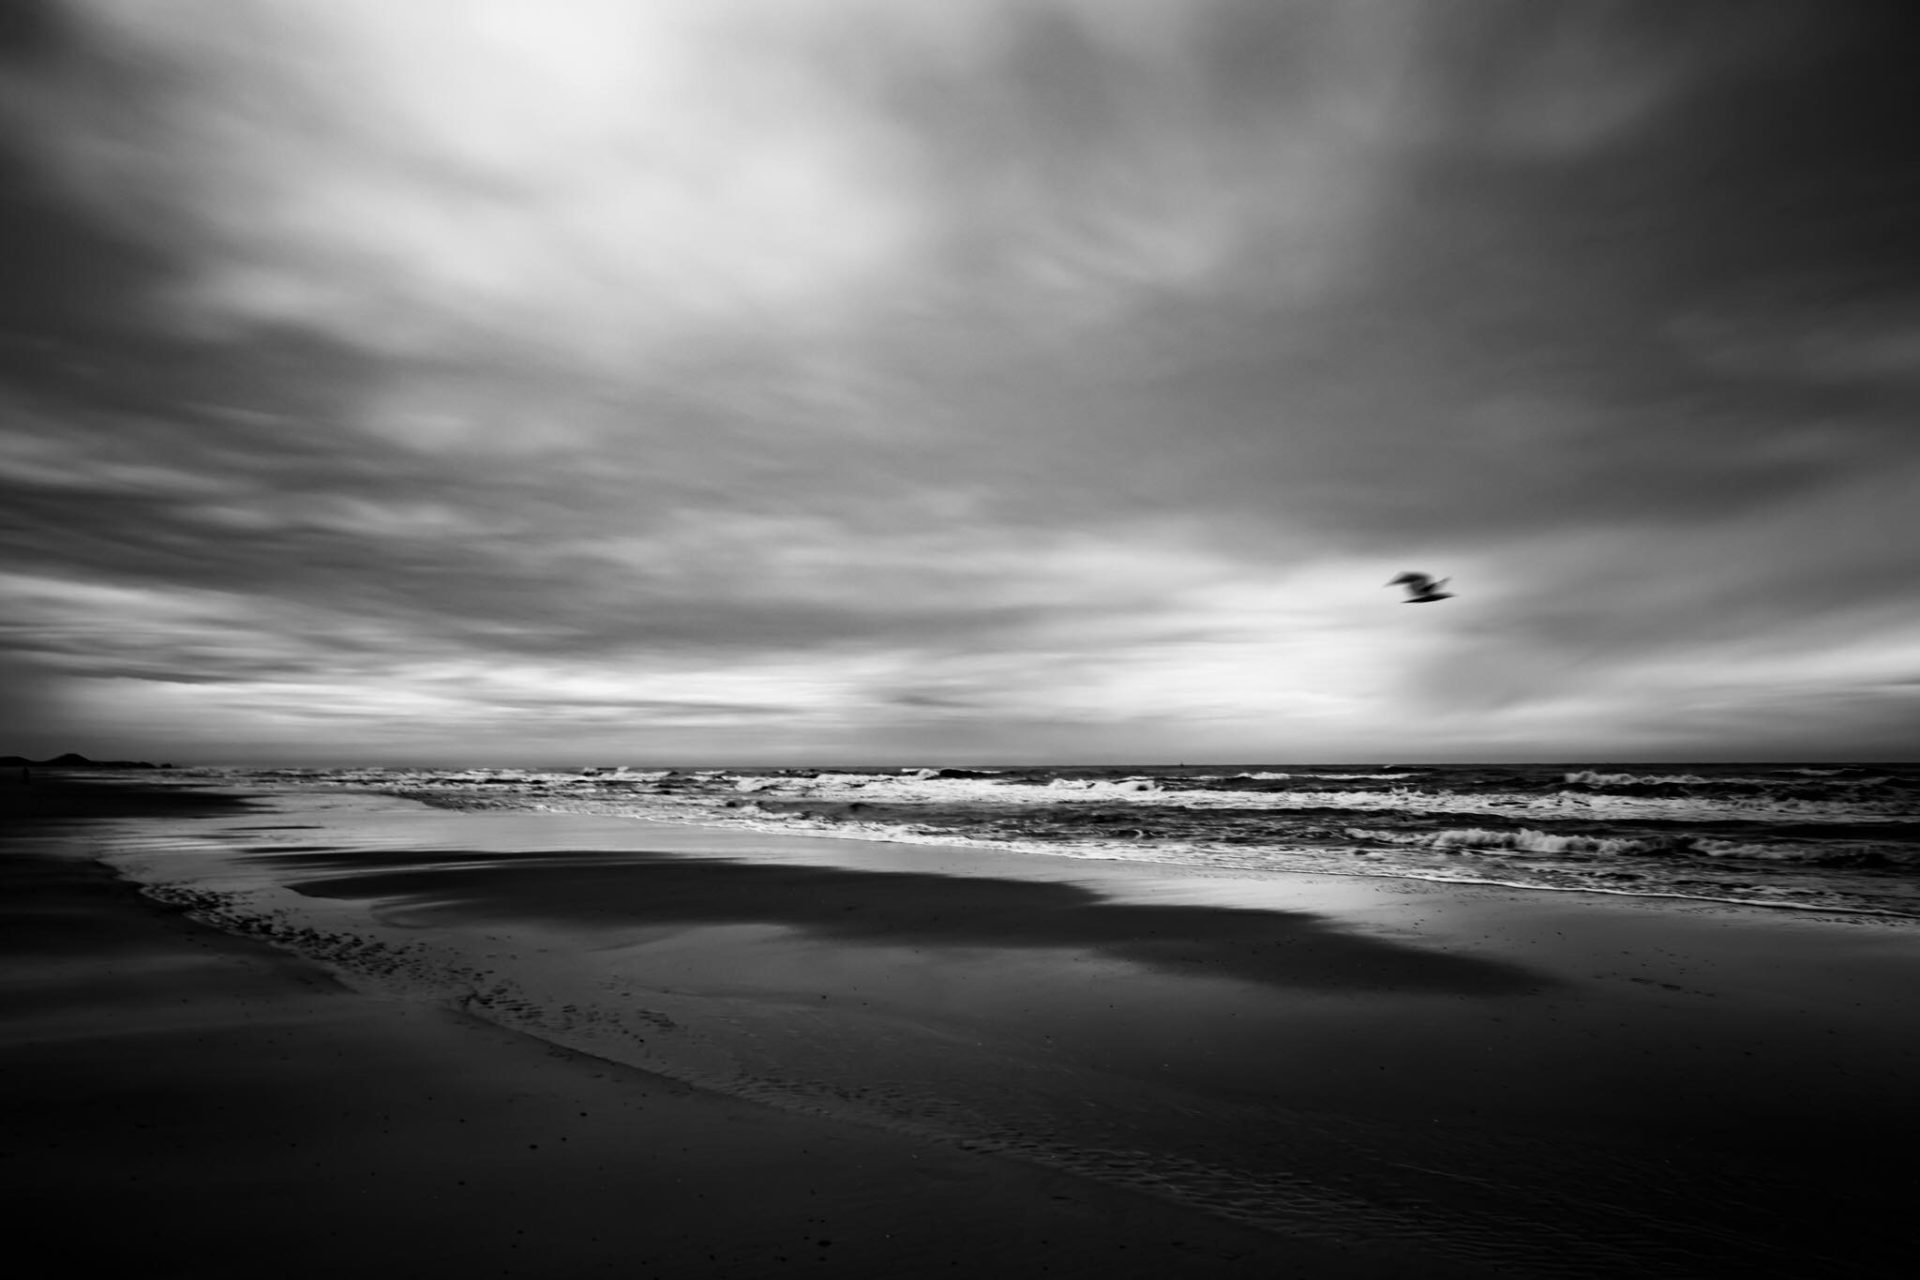 The Beach in B&W